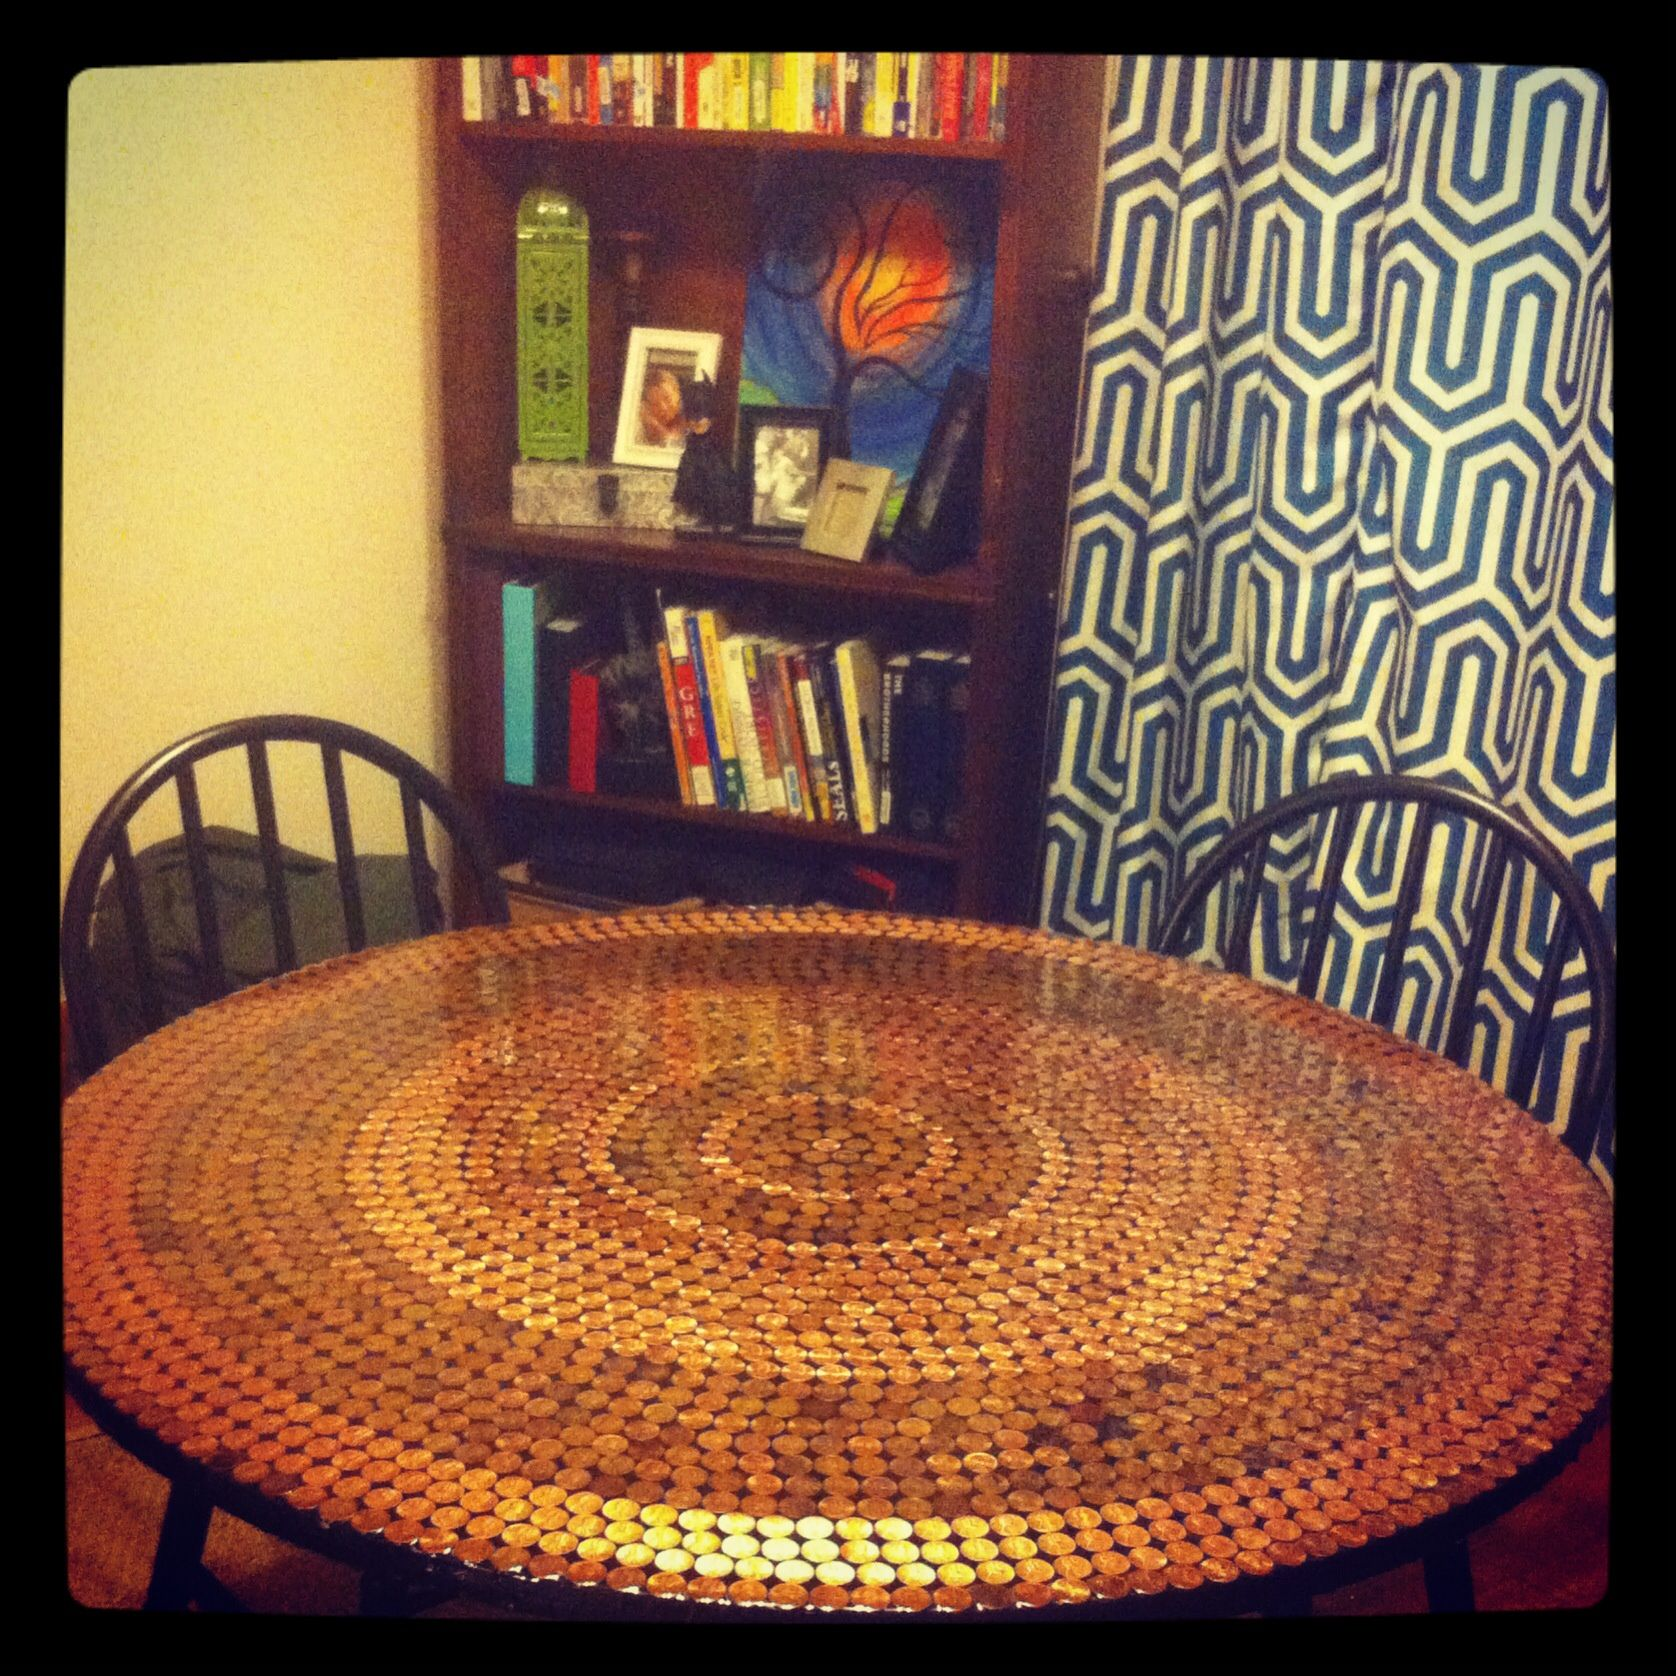 Handmade Penny Table Resin Poured Overtop Penny Decor - Diy Table Using Flooring